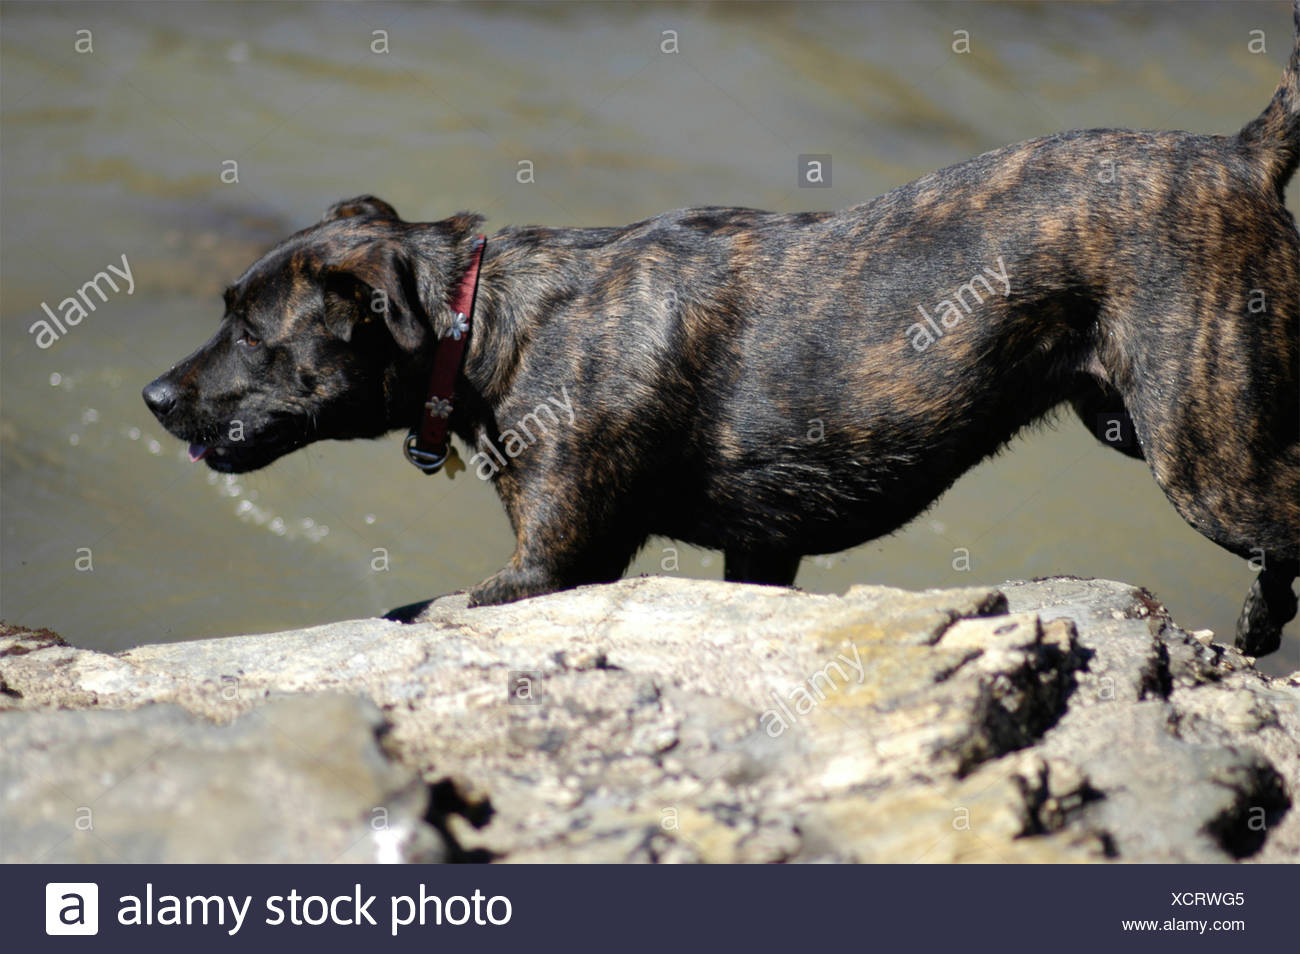 A family dog playing and exploring on a rocky beach with tide pools in Southern California USA  Stock Photo